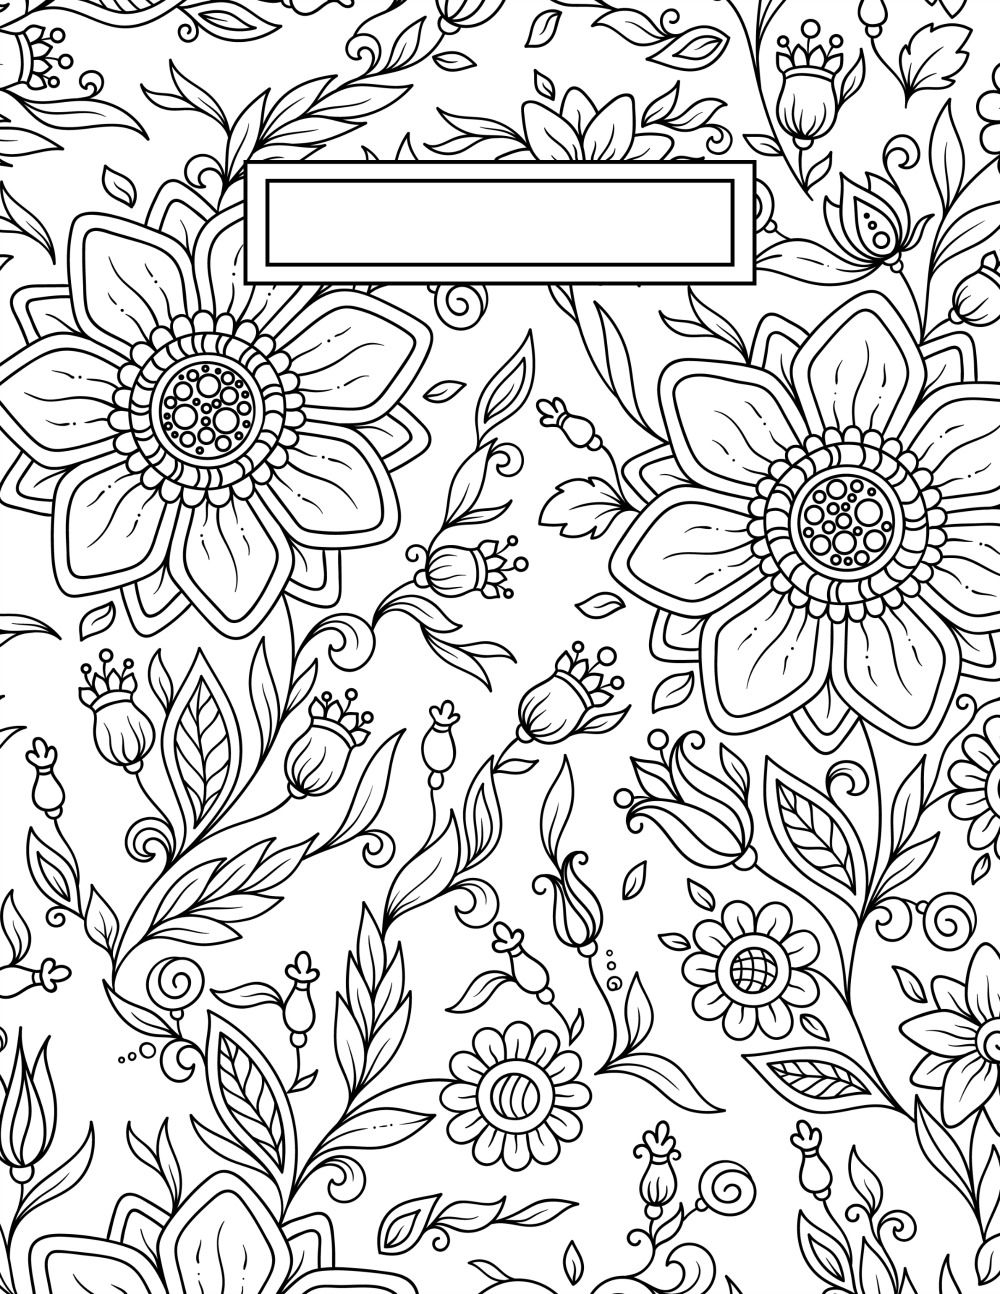 1000x1294 Printable Mayan Coloring Pages Google Search Art Class Bgc Free